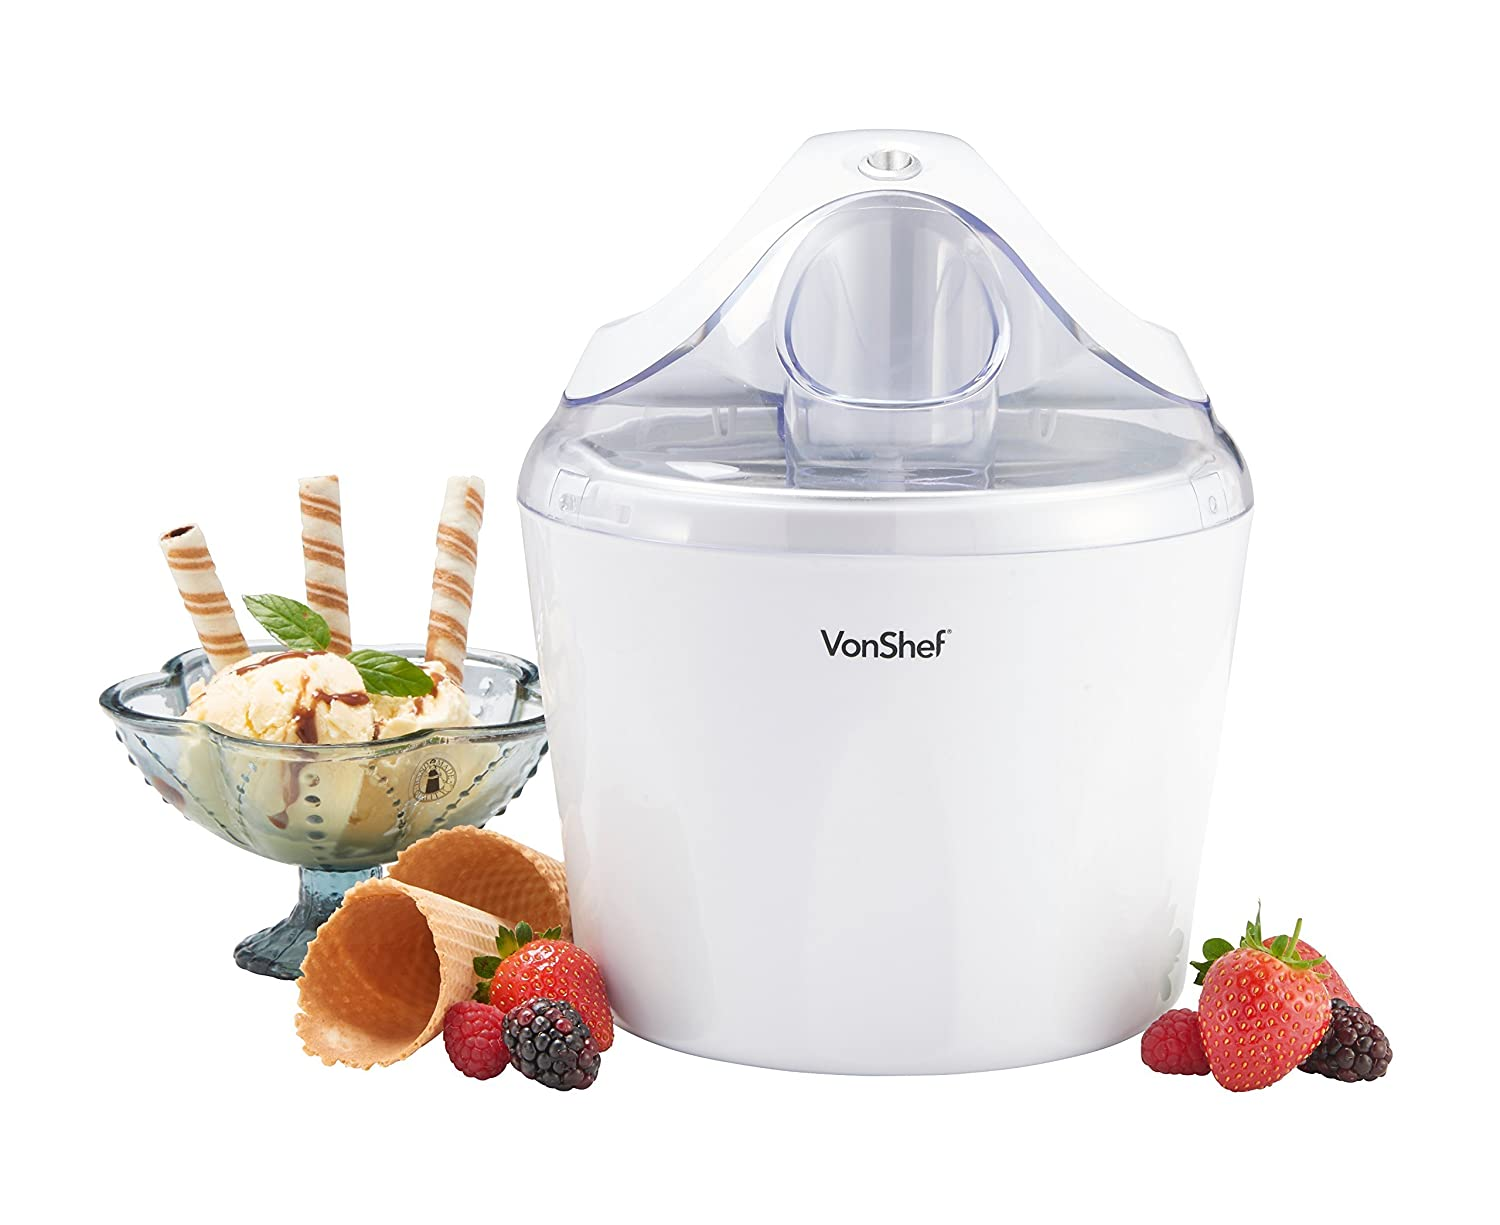 VonShef Ice Cream Maker